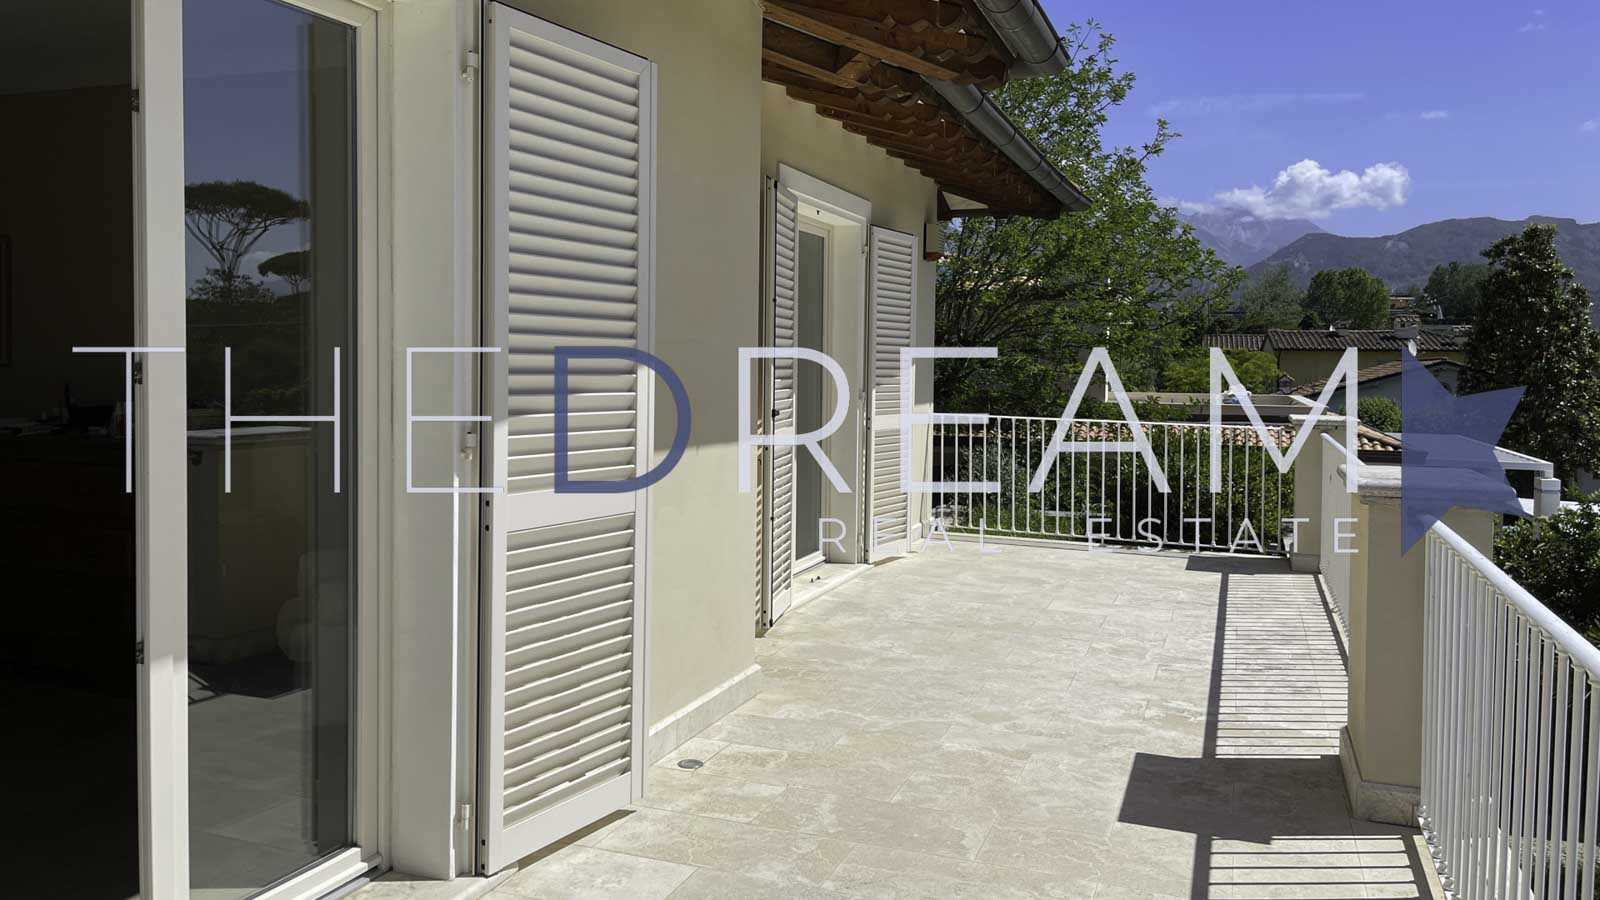 Spacious newly built villa for sale and for rent in Forte dei Marmi, set in a large garden with swimming pool, located a few steps from the center and 800 meters from the beach. Property managed by The Dream RE, real esate agency in Forte dei Marmi